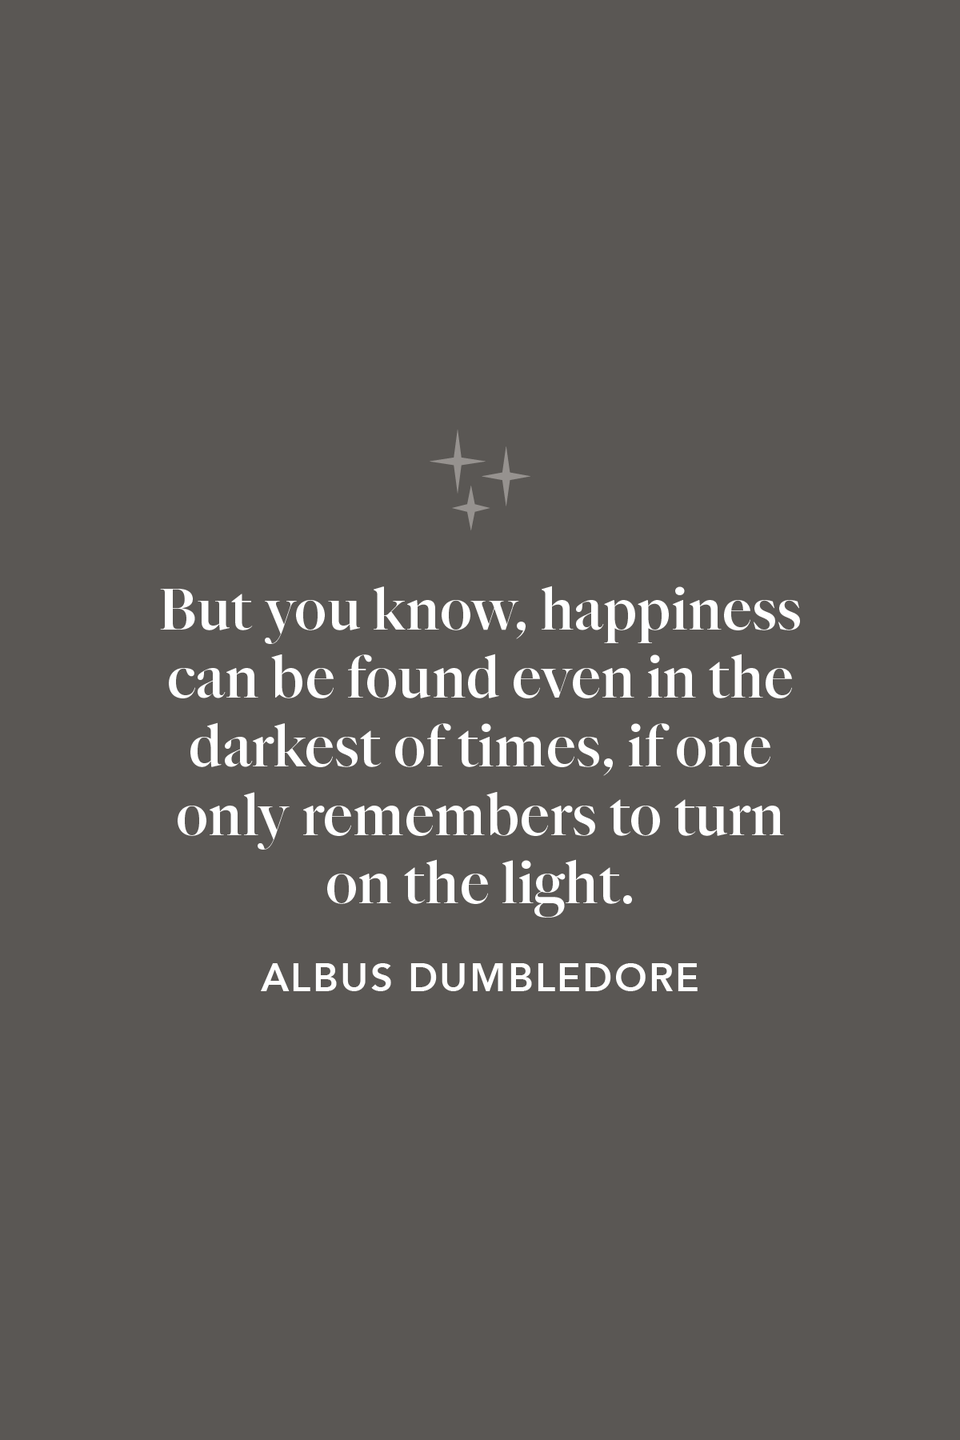 """<p>In the film <em>The Prisoner of Azkaban, </em>Dumbledore addresses the Hogwarts students in the great hall and says, """"But you know, happiness can be found even in the darkest of times, if one only remembers to turn on the light.""""</p>"""